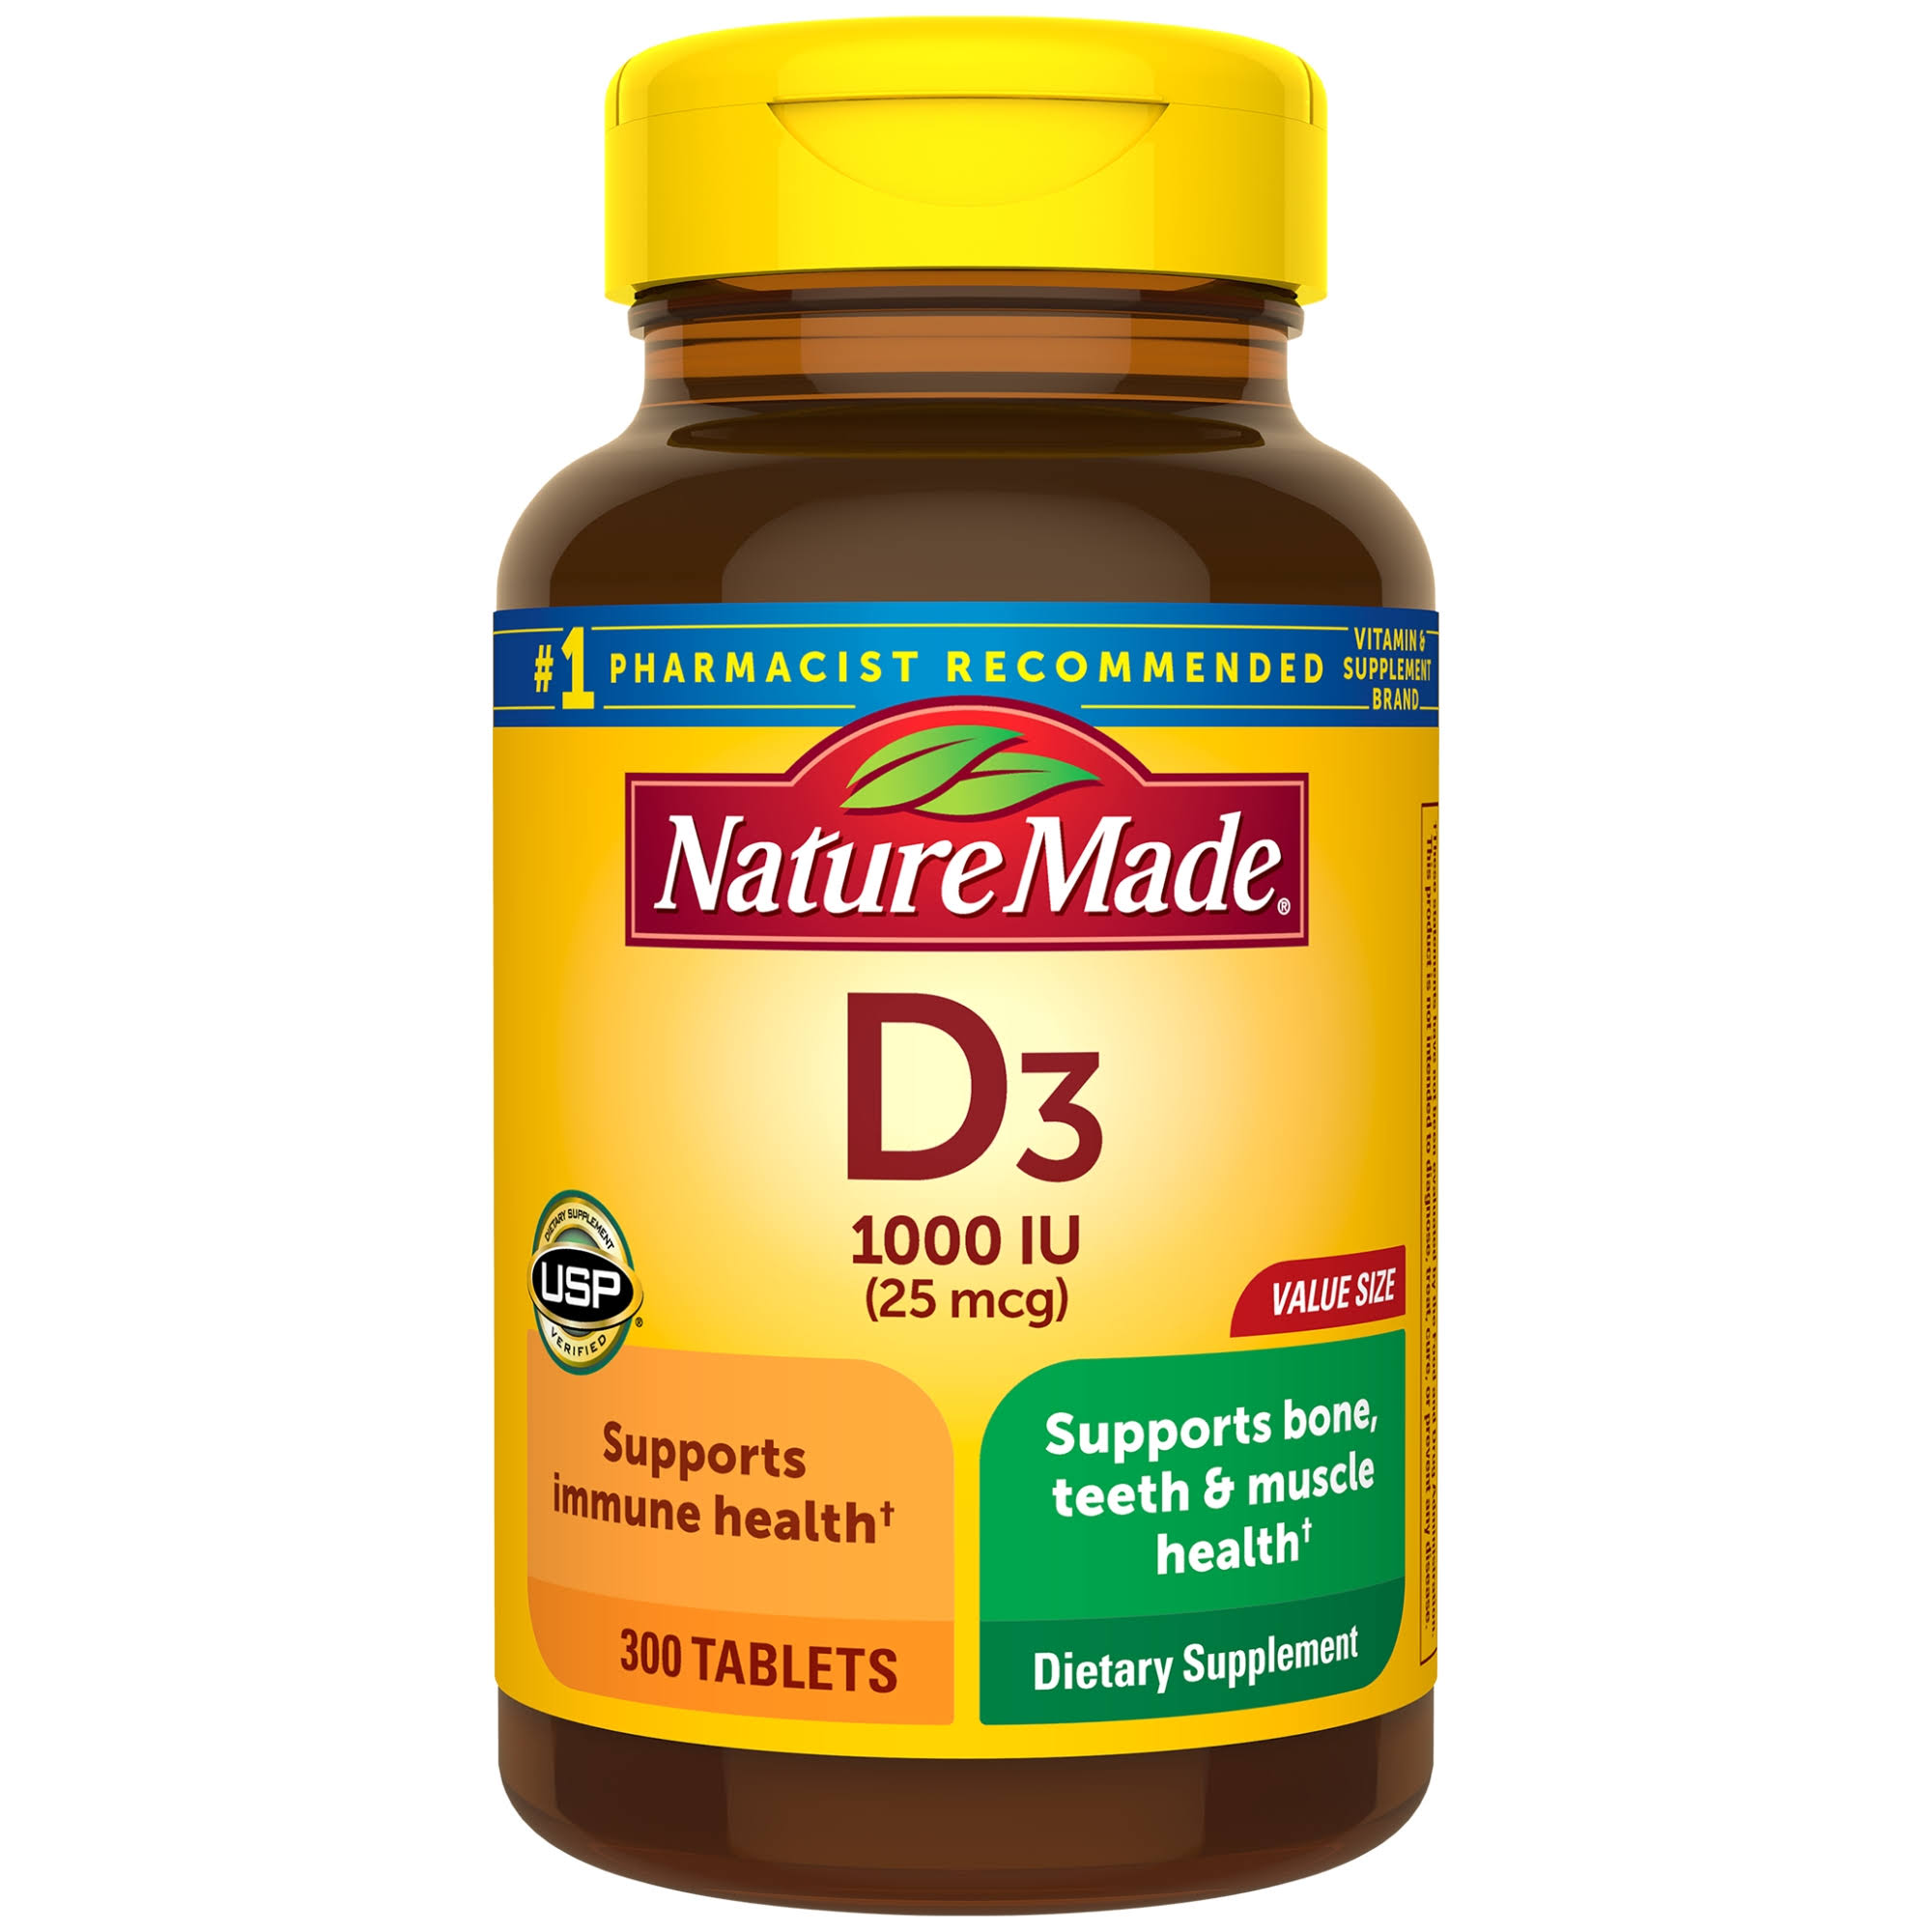 Nature Made Vitamin D3 1000 IU Dietary Supplement - 300 Tablets